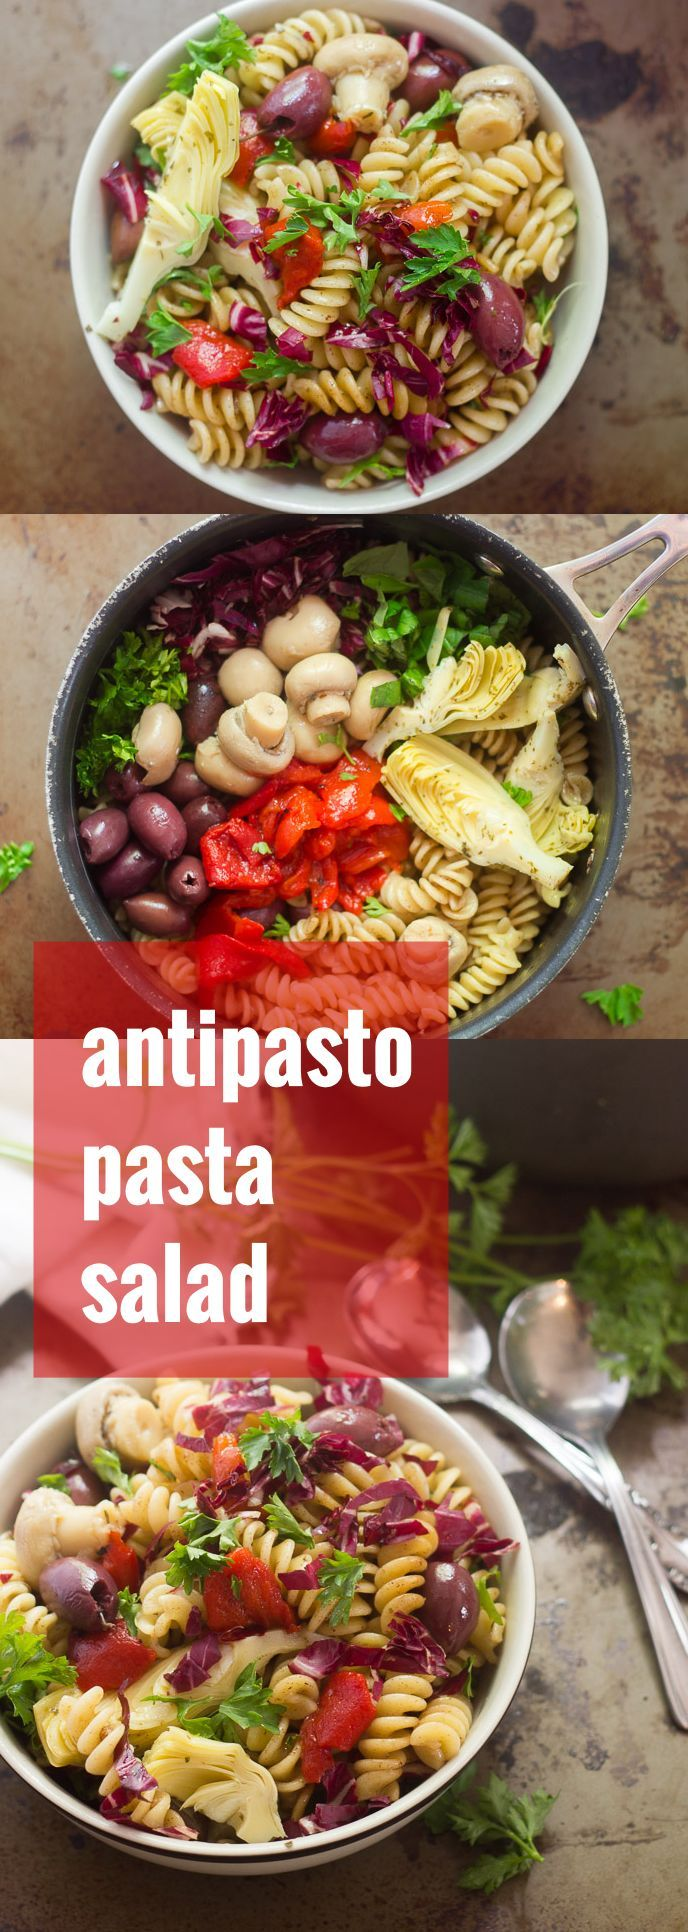 This vegan antipasto pasta salad is made with rotini pasta dressed in a tangy balsamic vinaigrette and tossed with artichoke hearts, marinated mushrooms, roasted red peppers, olives and herbs.